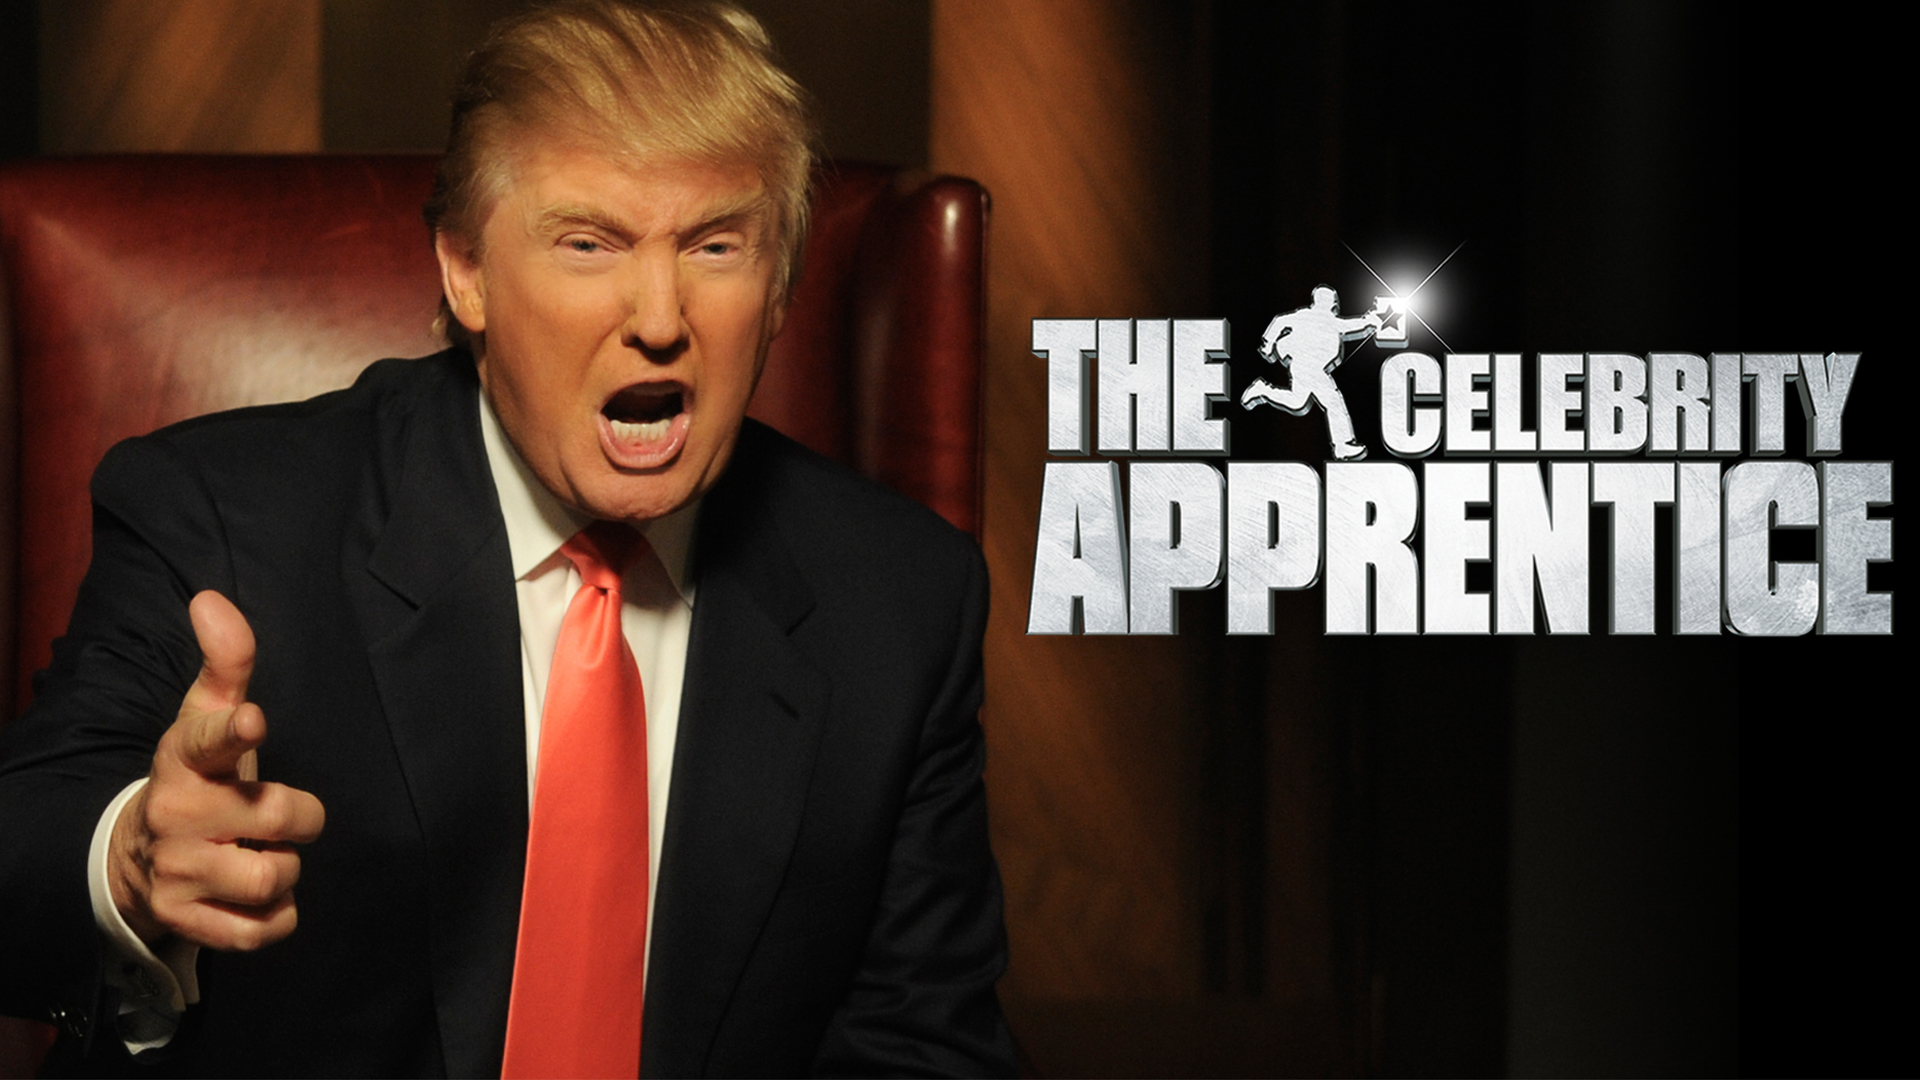 2016 debates were we watching the apprentice the marshall report